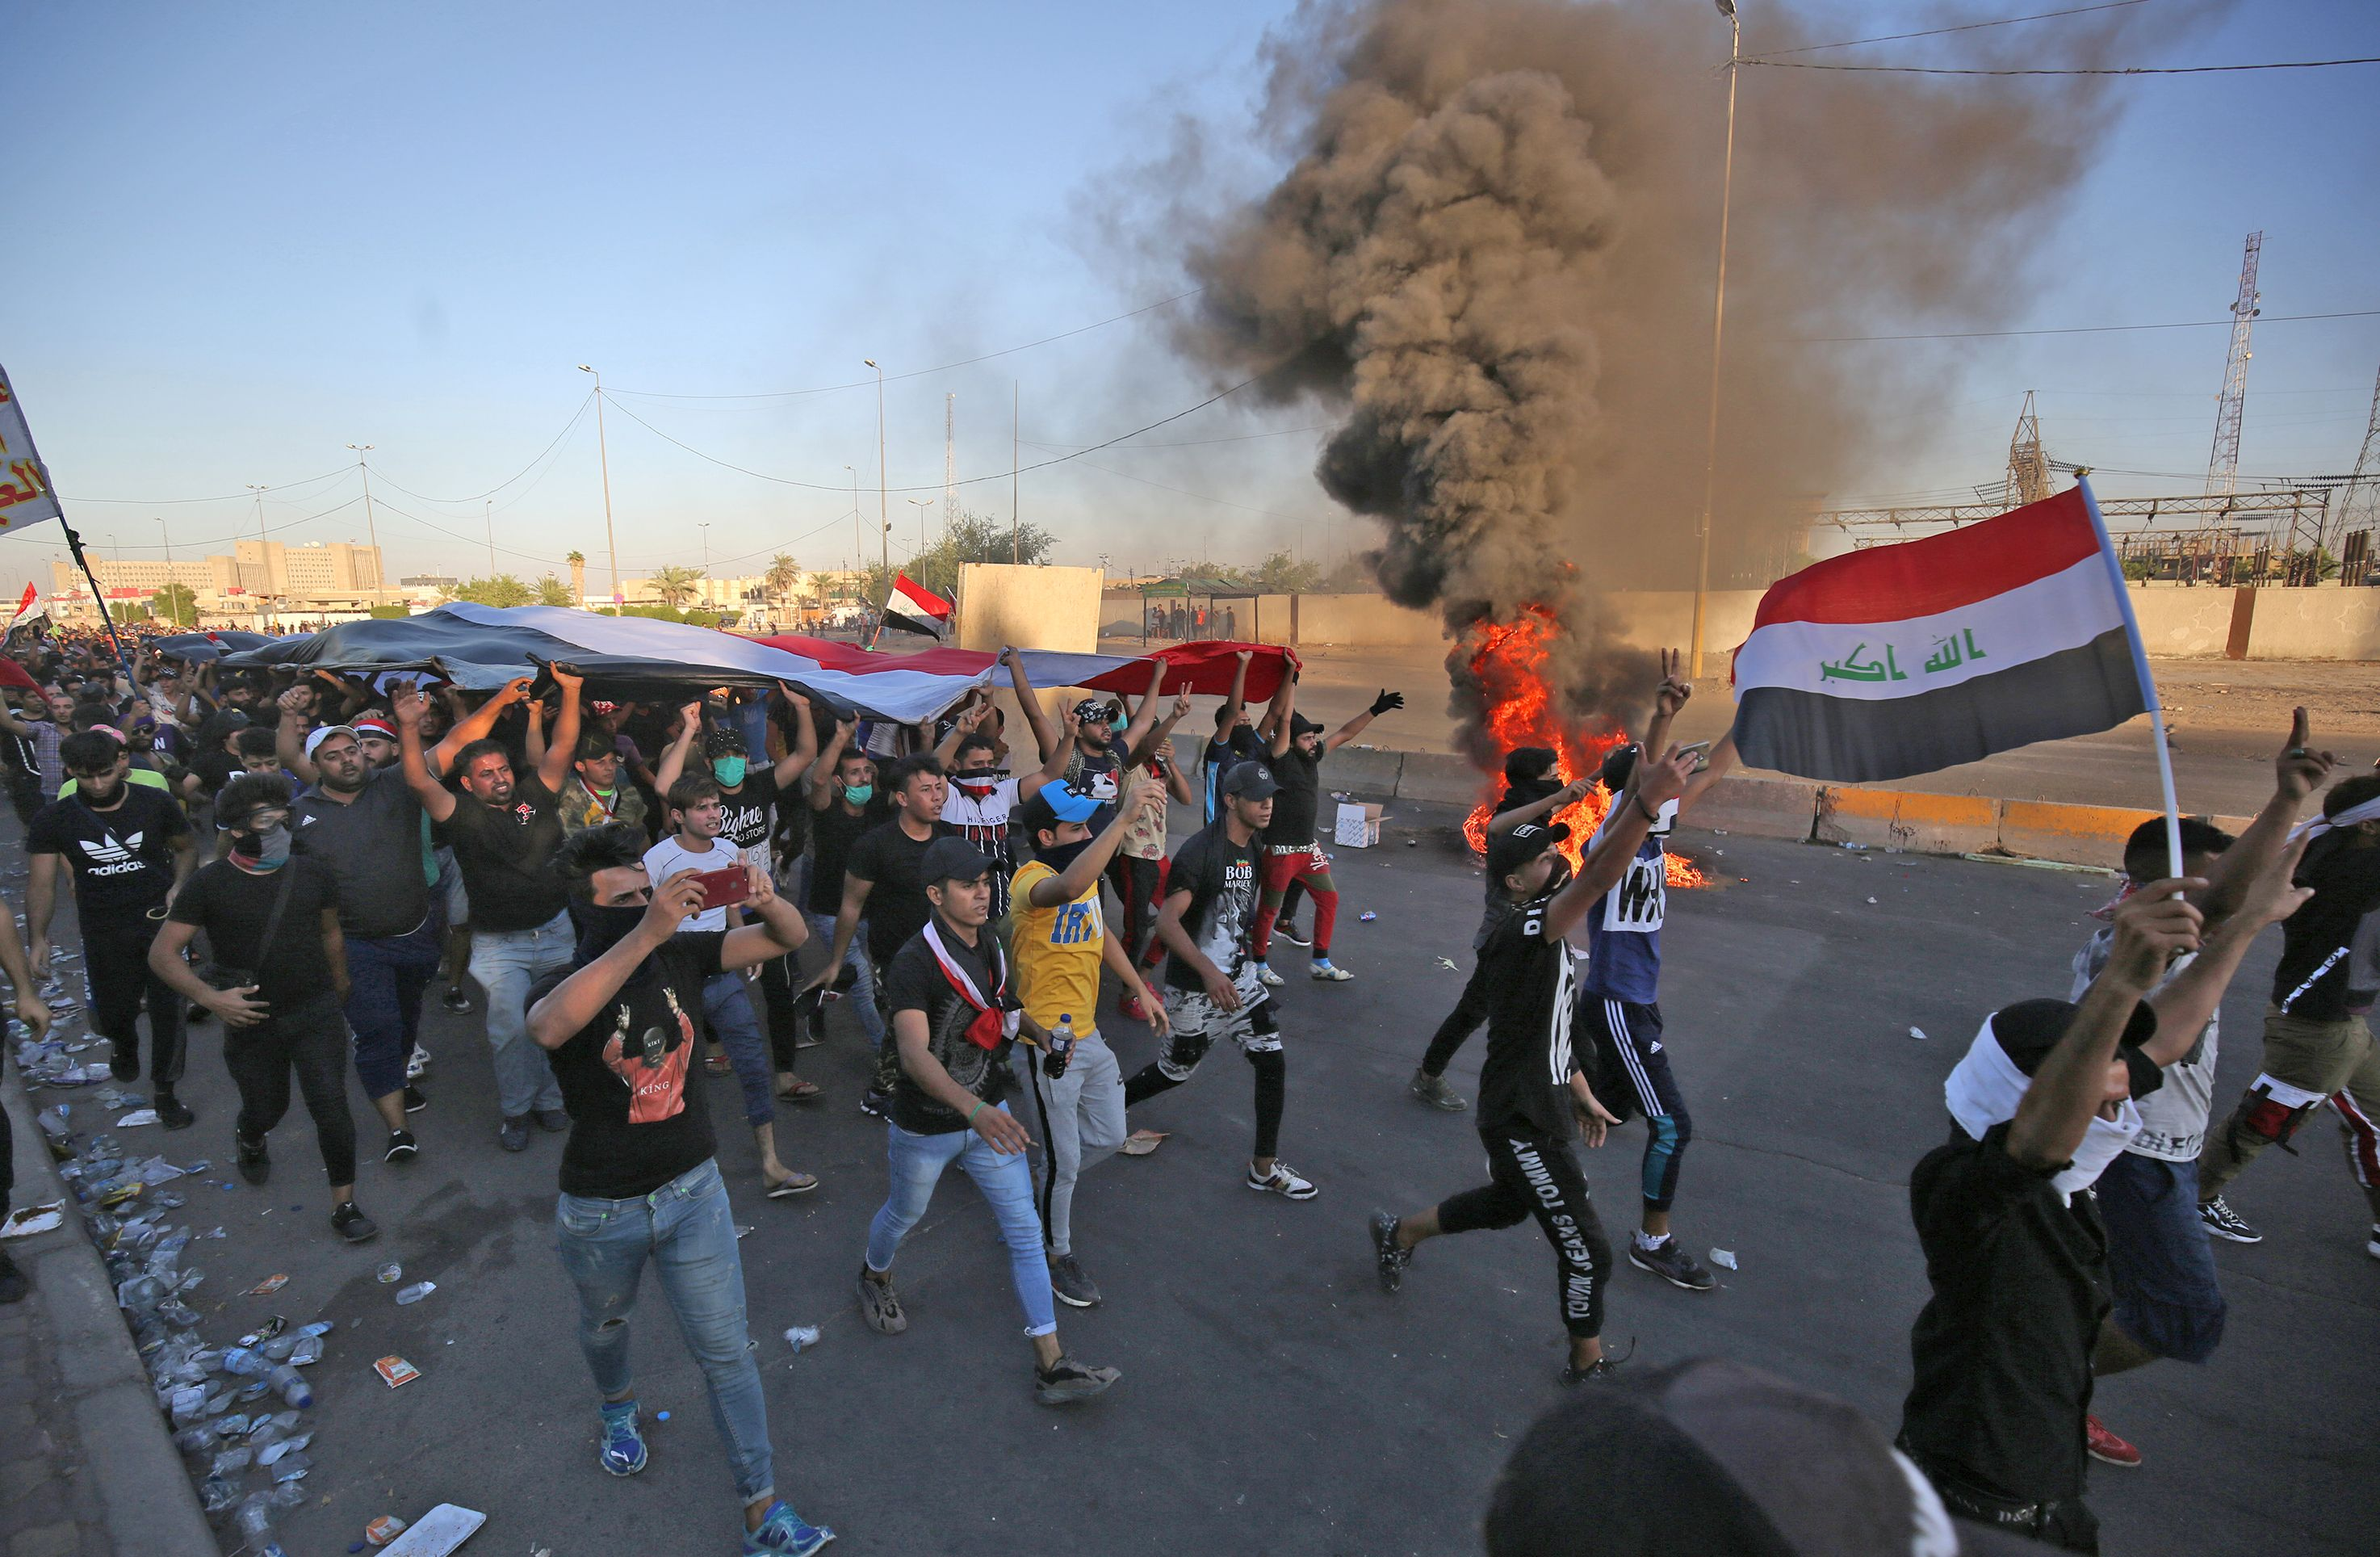 Iraqi protesters take part in a demonstration against state corruption, failing public services, and unemployment, in the Iraqi capital Baghdad's central Khellani Square on October 4, 2019. (AHMAD AL-RUBAYE/AFP via Getty Images)